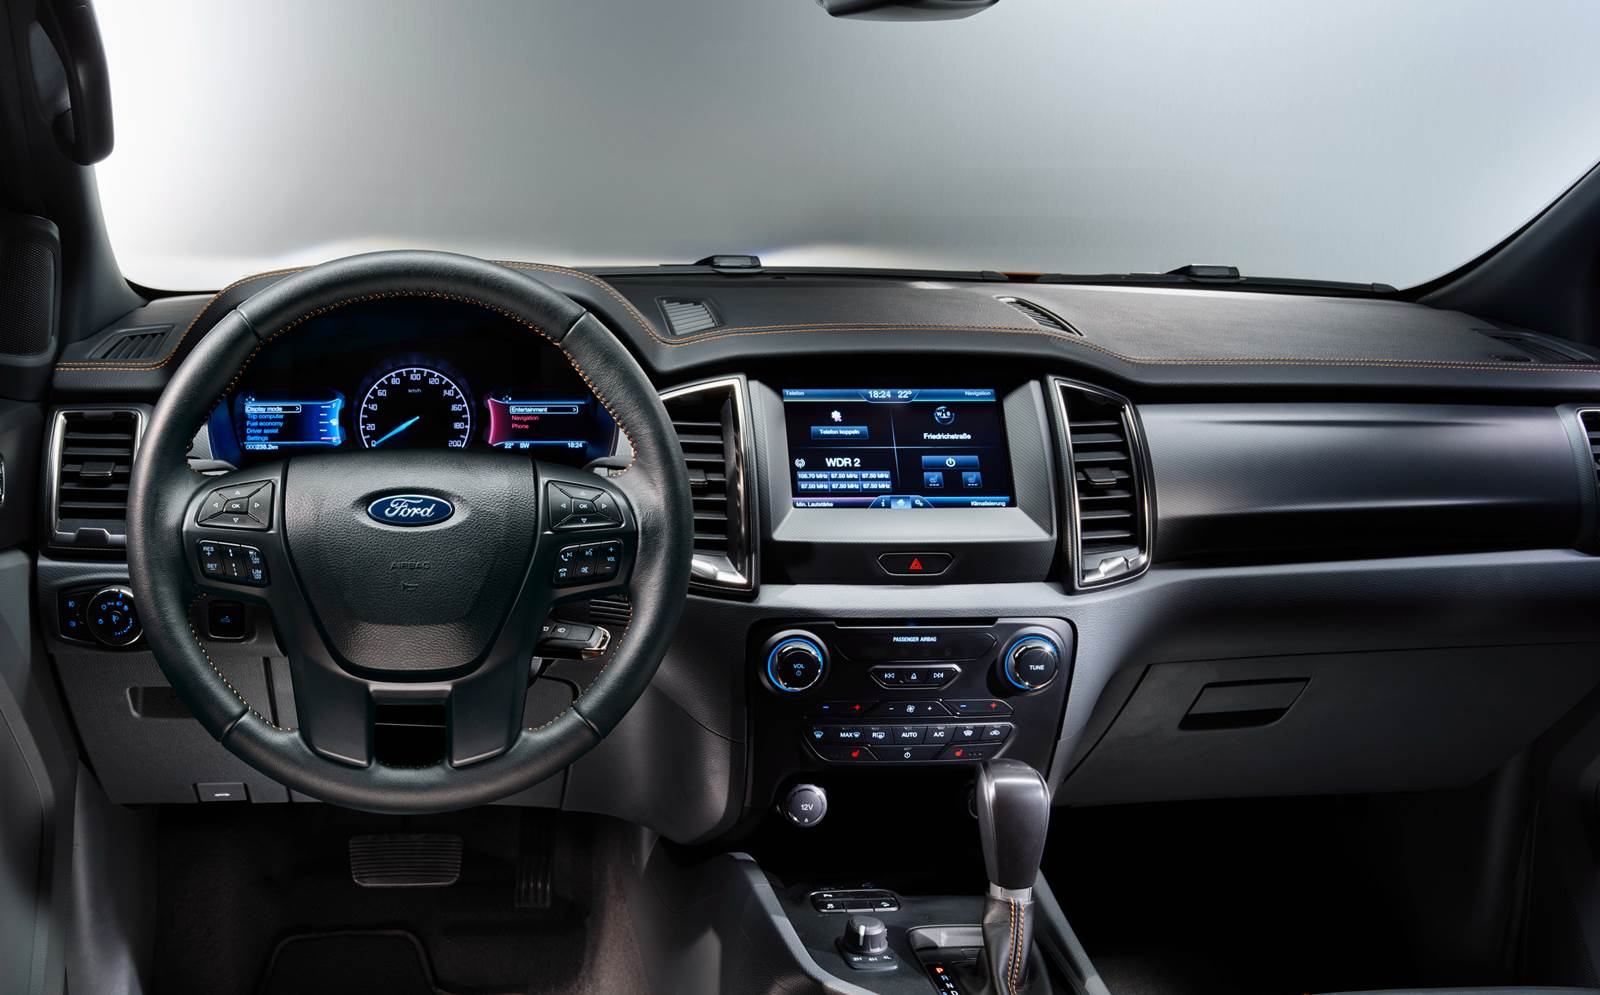 Nova Ford Ranger 2016 - interior